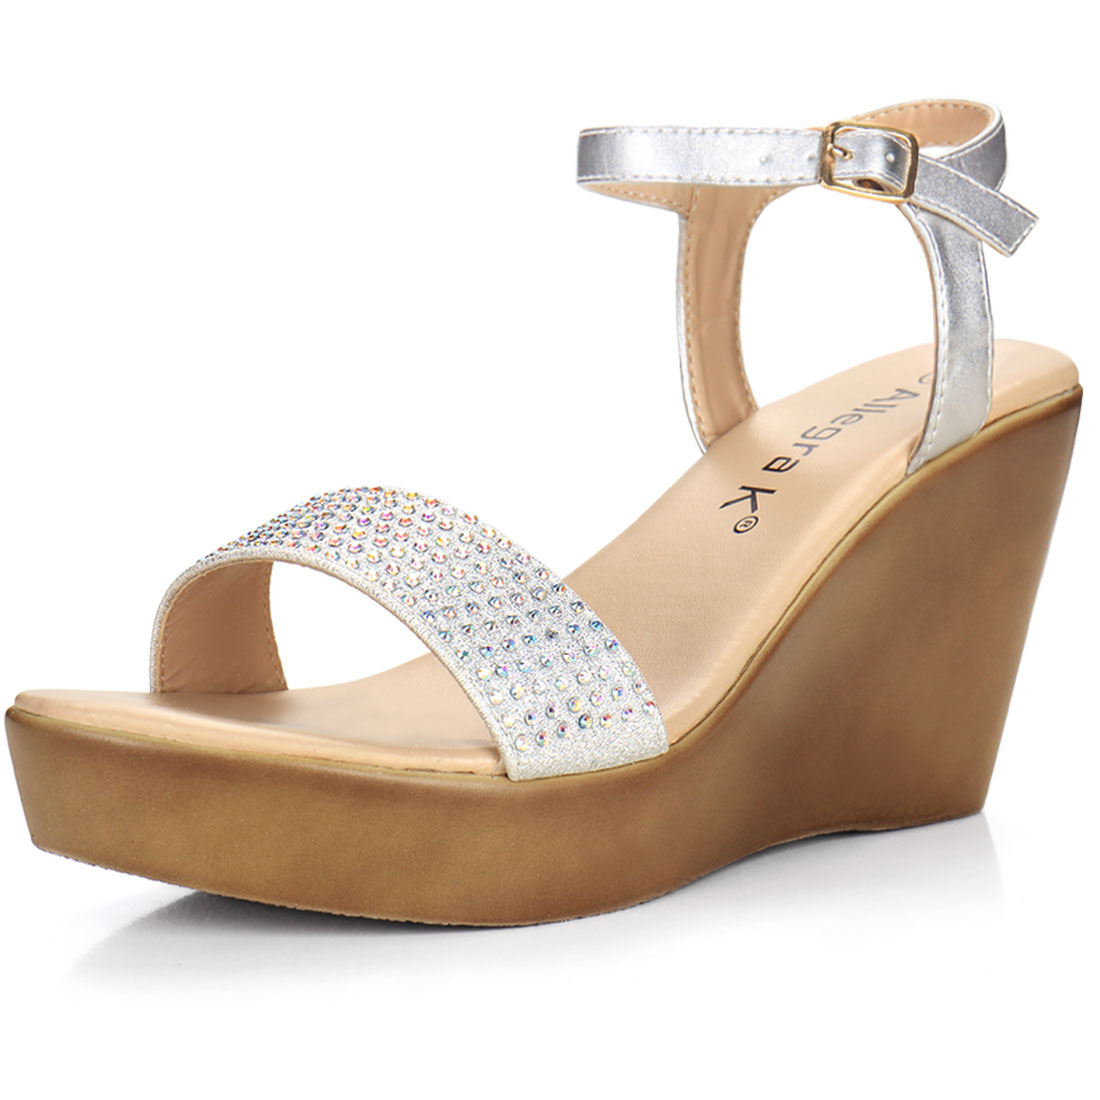 Woman Rhinestones Embellished Open Toe Wedge Sandals Silver US 8